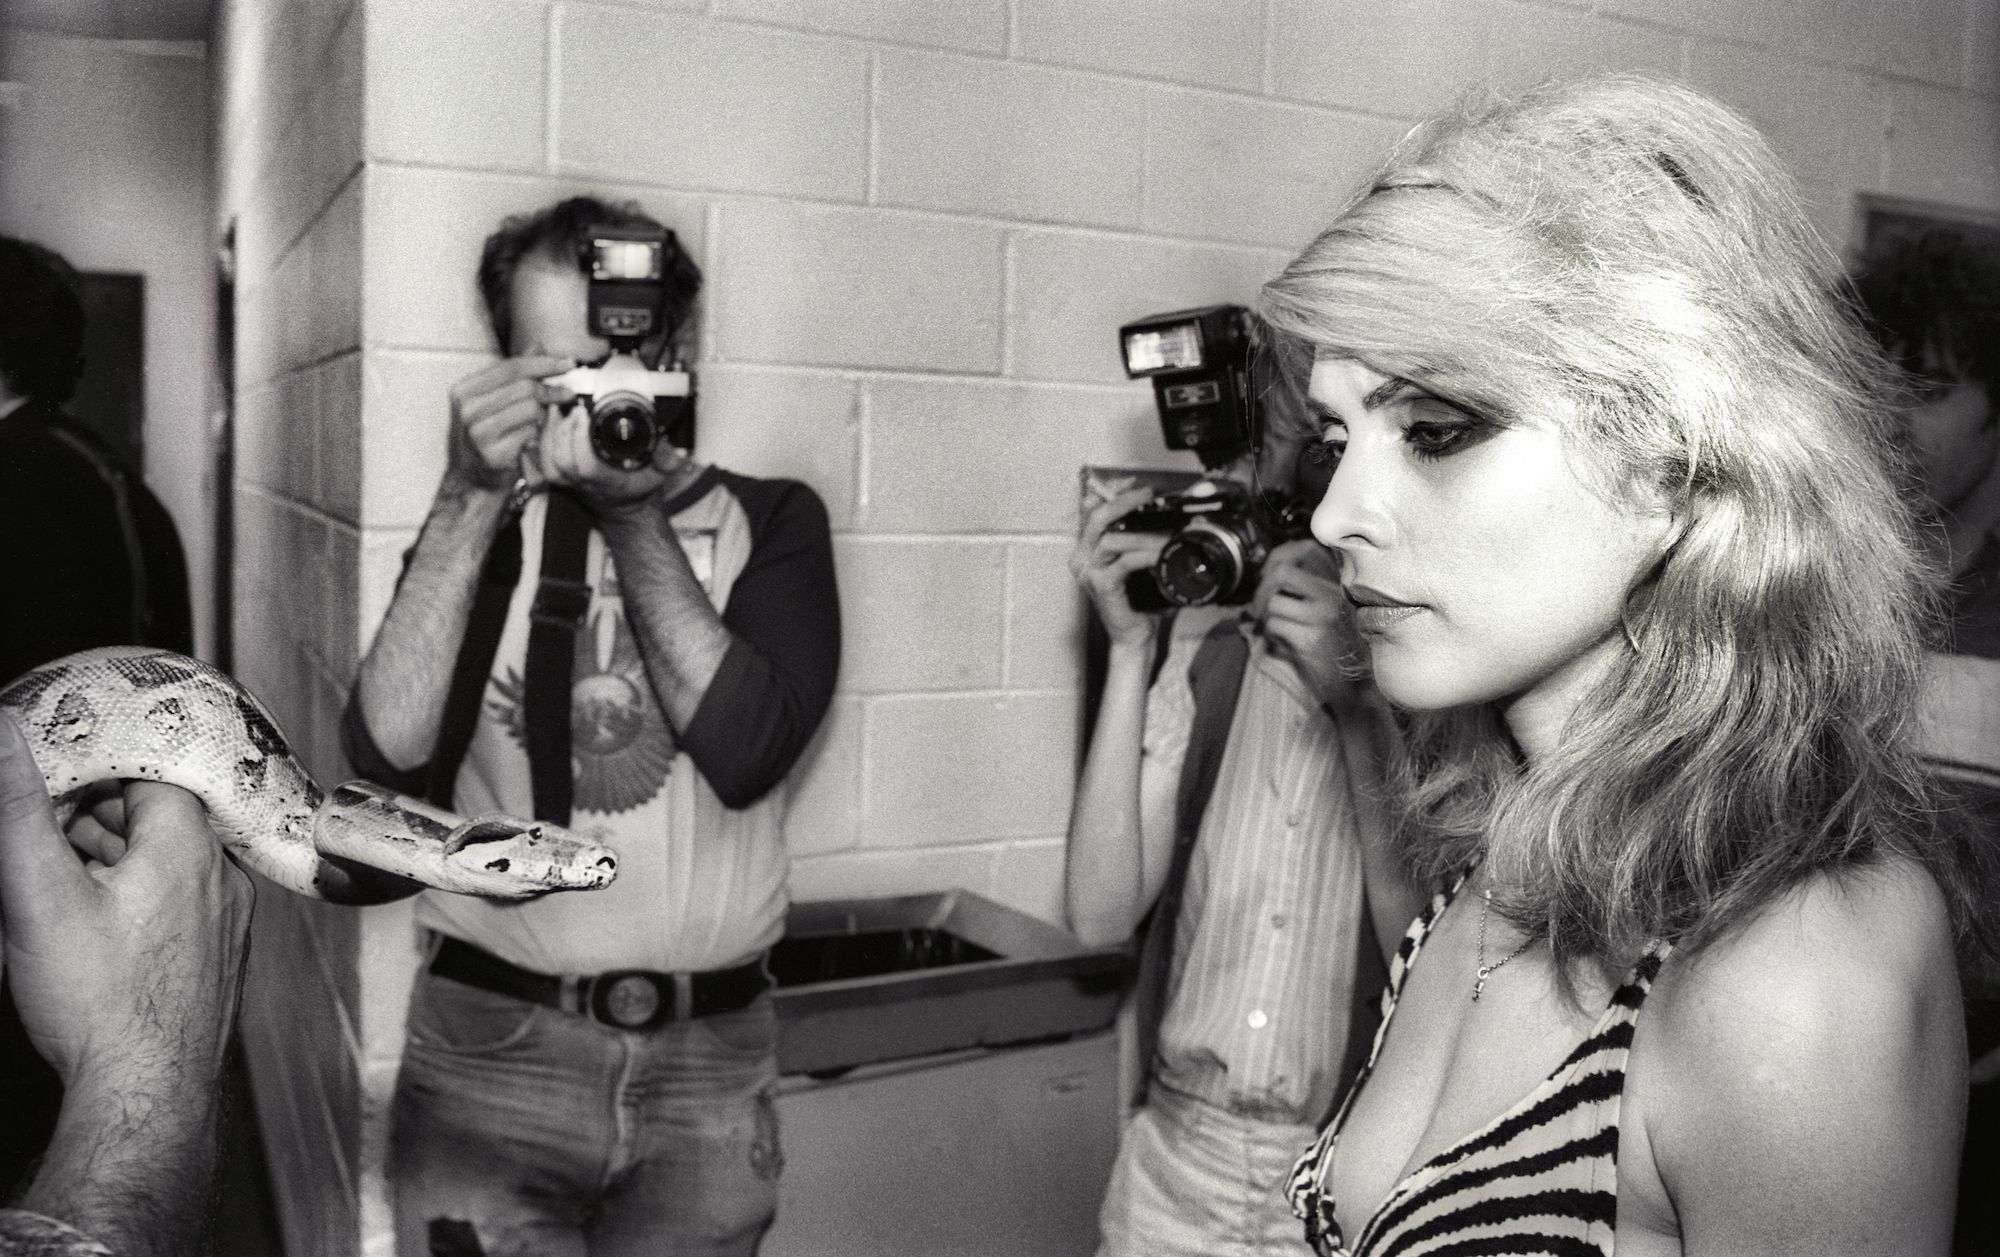 Musicians Backstage in the 1970s - the 50 Best Photos of